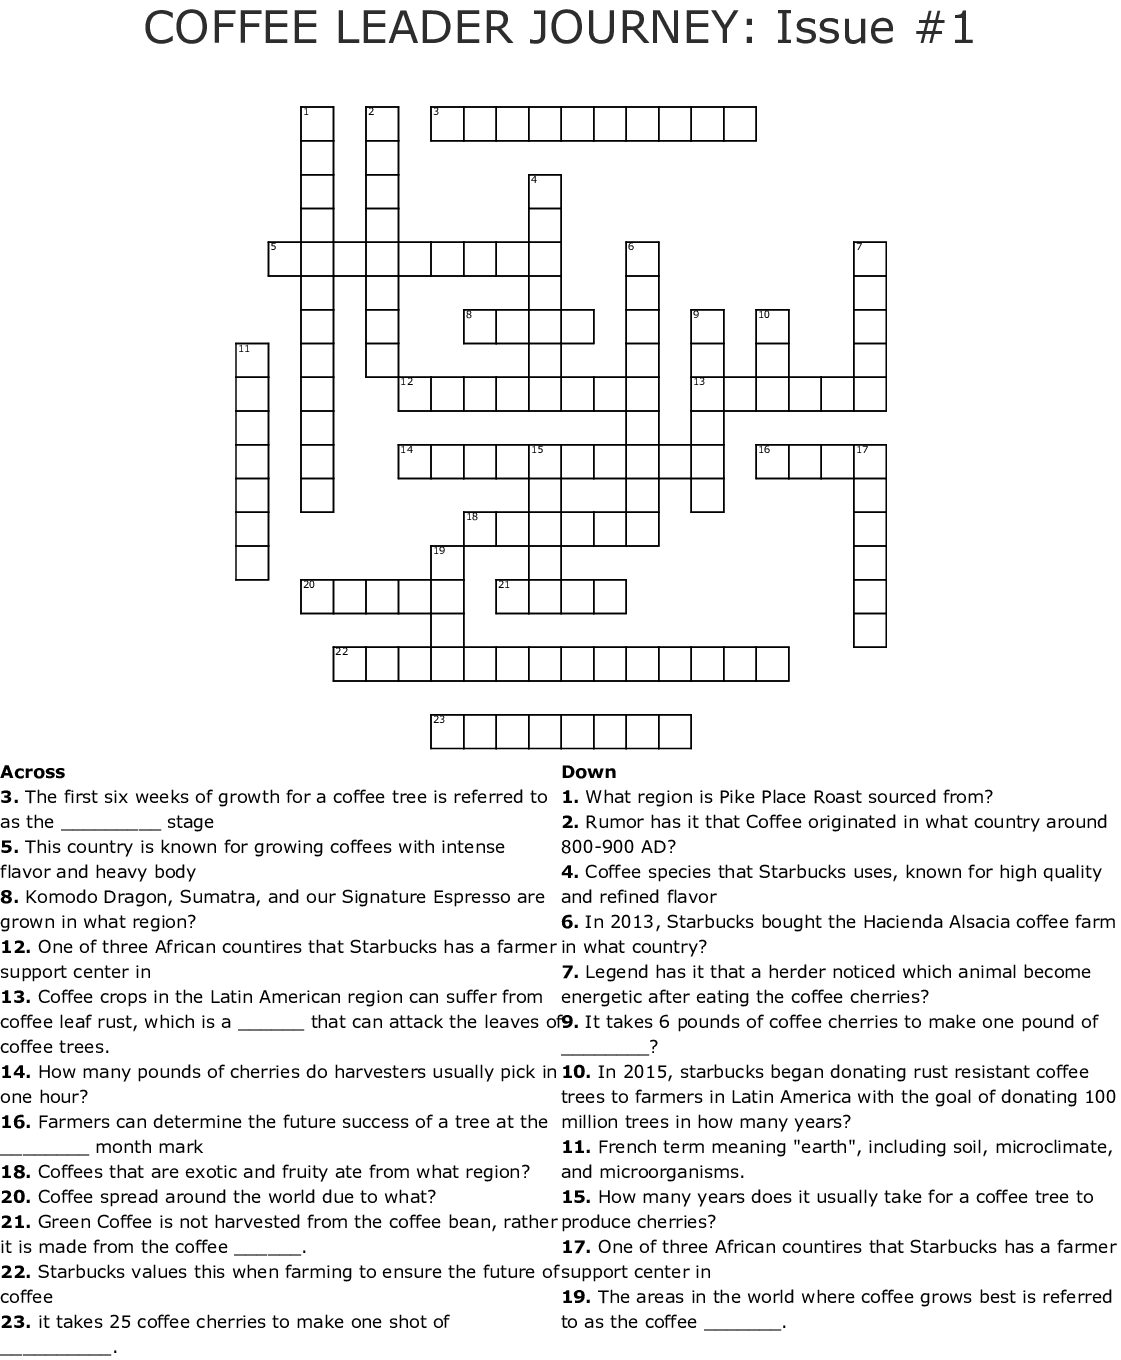 Coffee Leader Journey Issue 1 Crossword